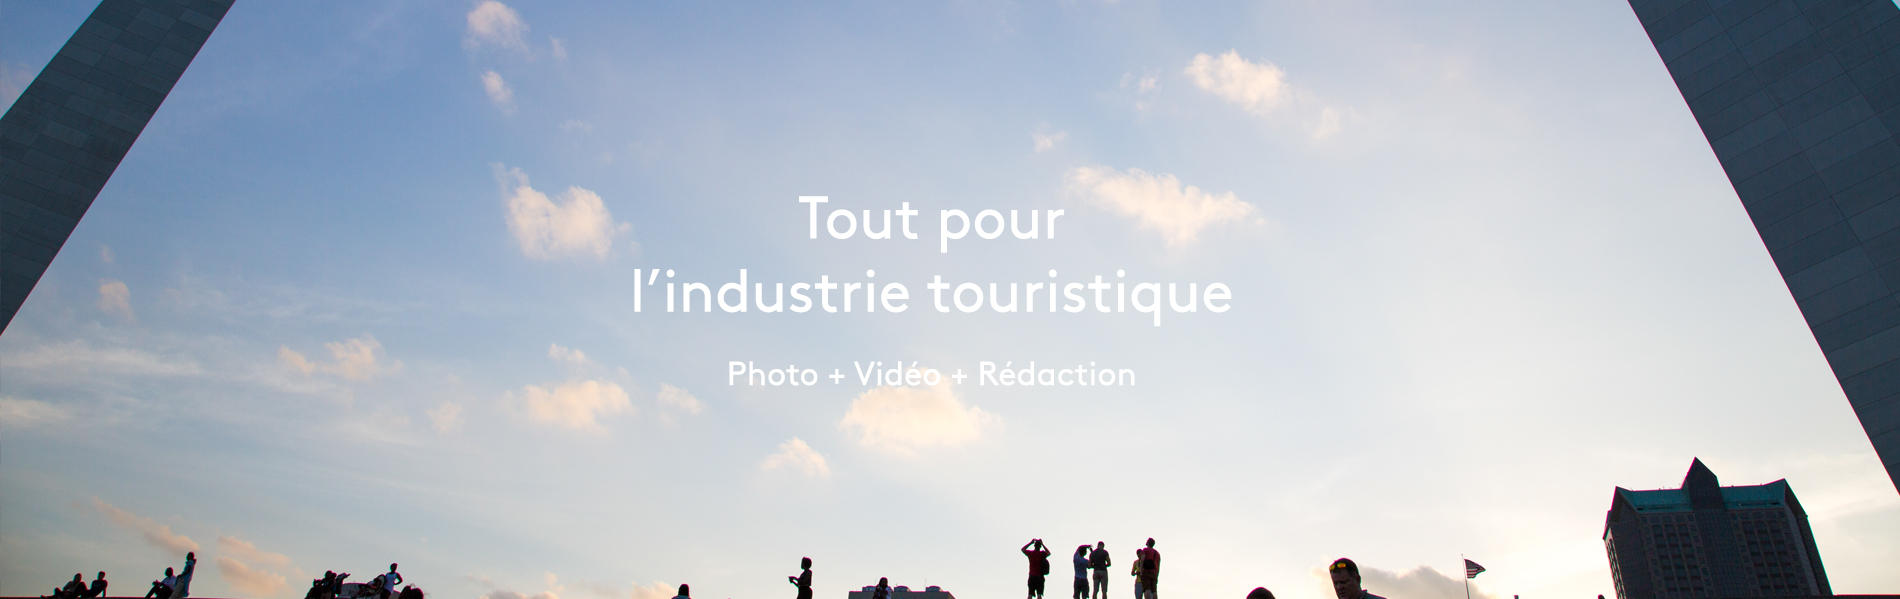 Industrie-Touristique_HomePage